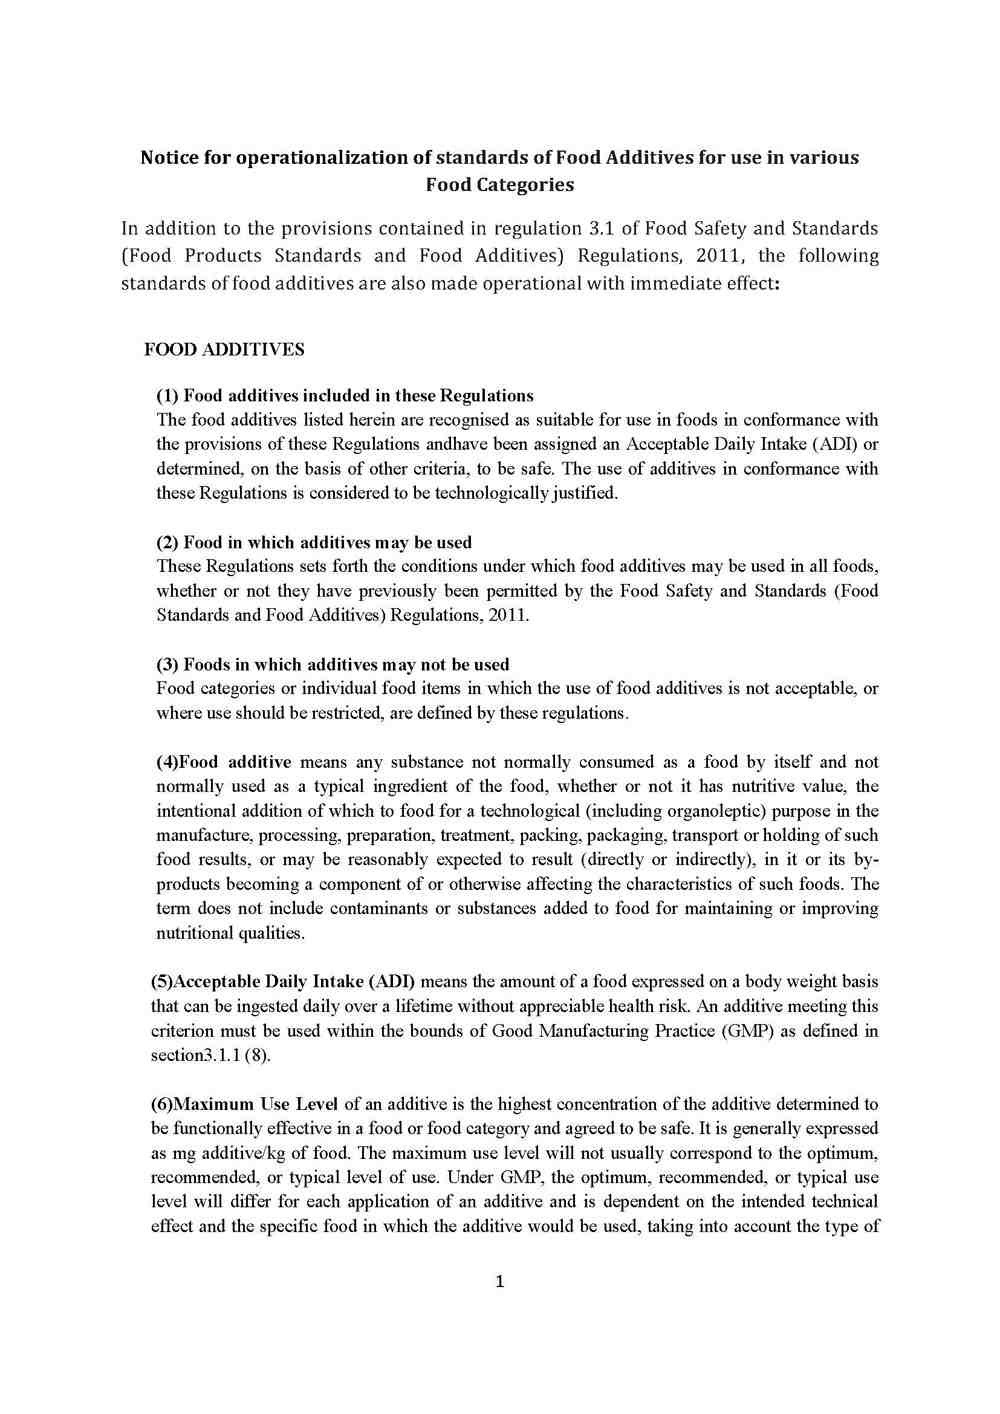 Pages from Notice_Operationalization_Food_Additives_standards